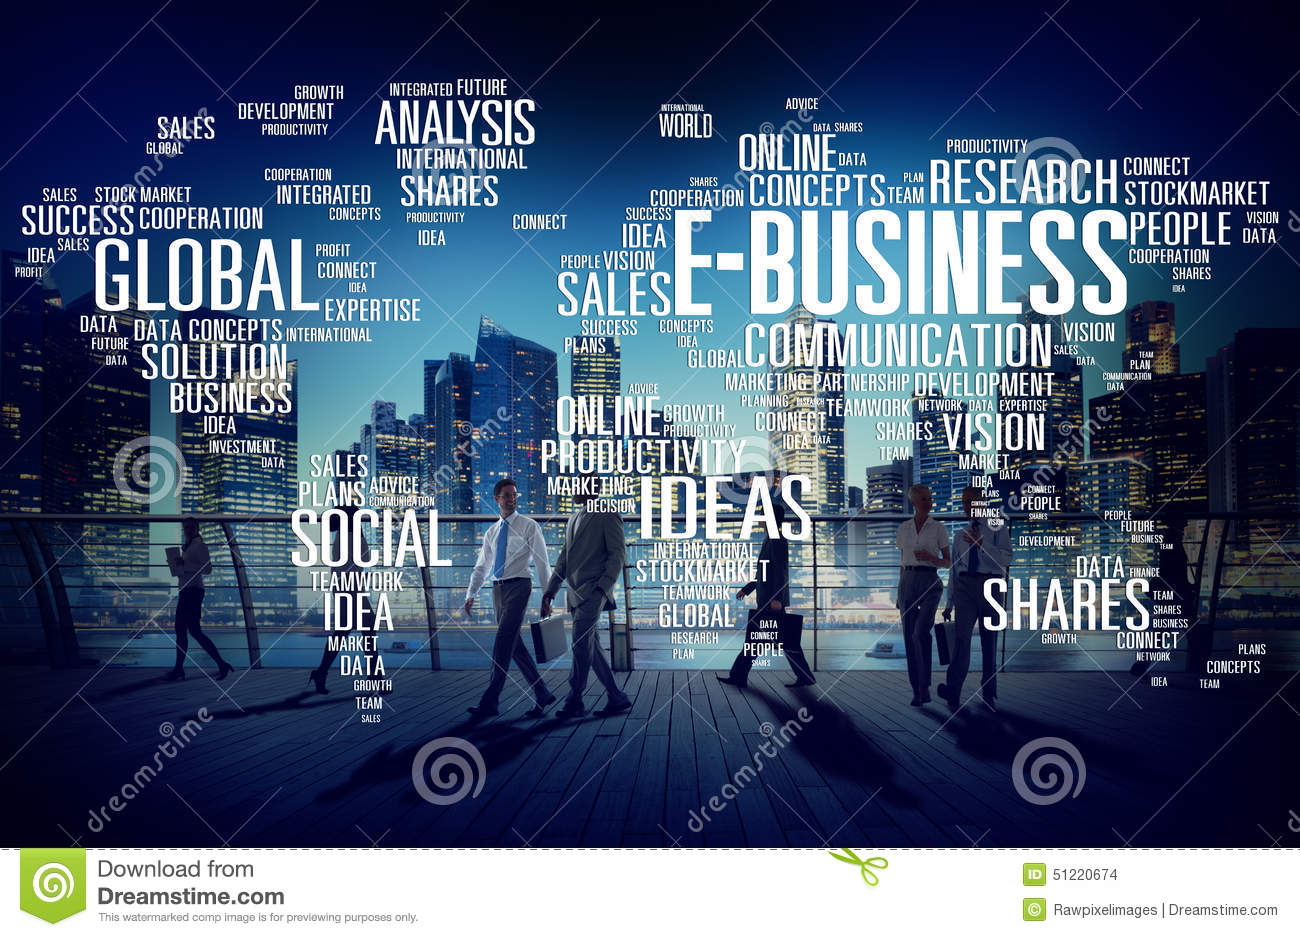 e-business-global-business-commerce-online-world-concept-51220674.jpg